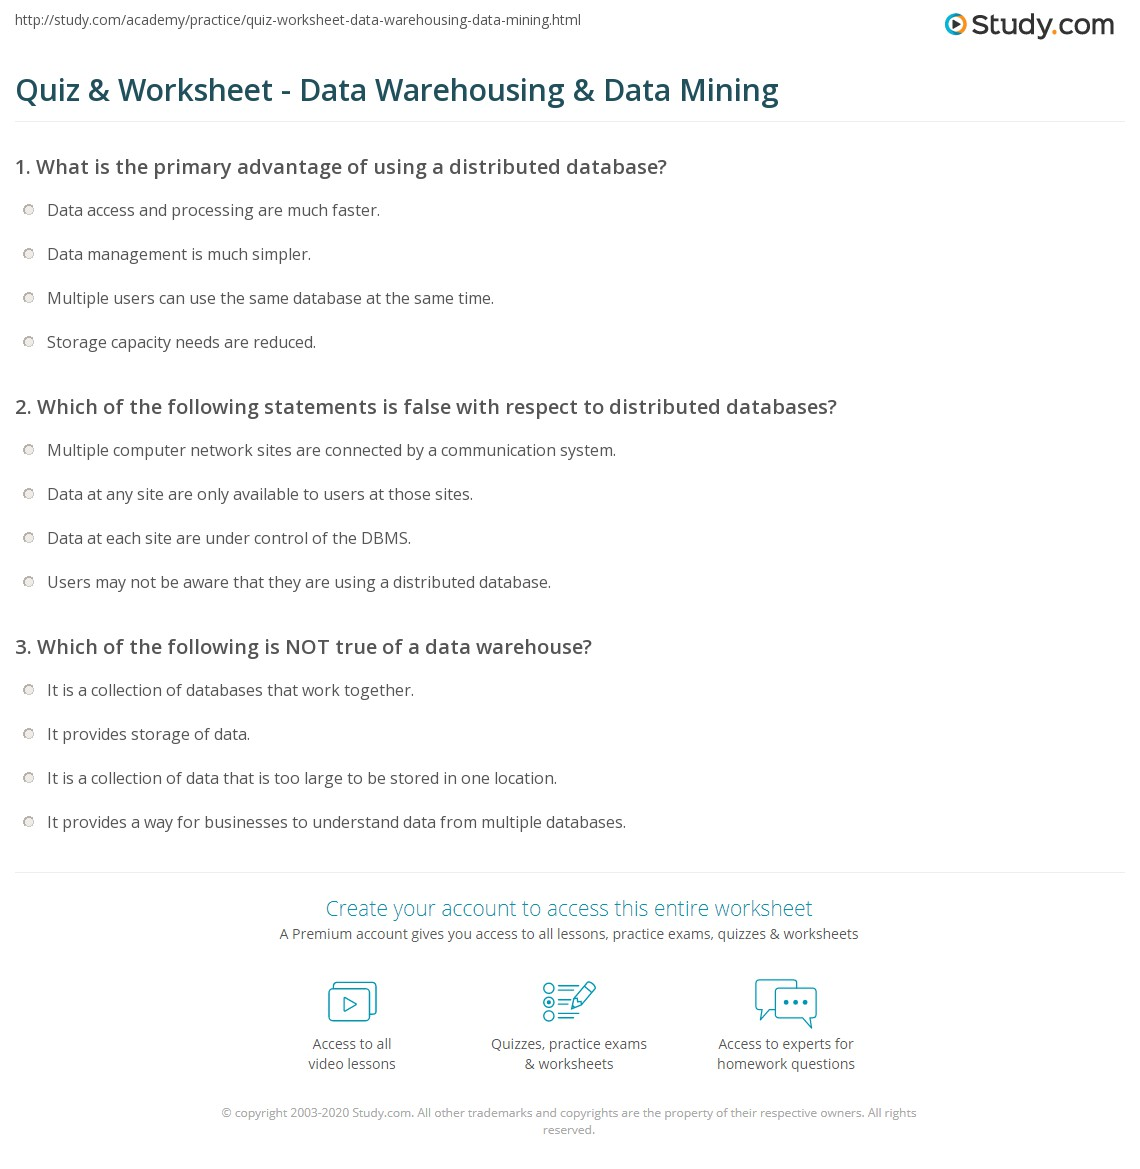 Quiz & Worksheet - Data Warehousing & Data Mining | Study.com